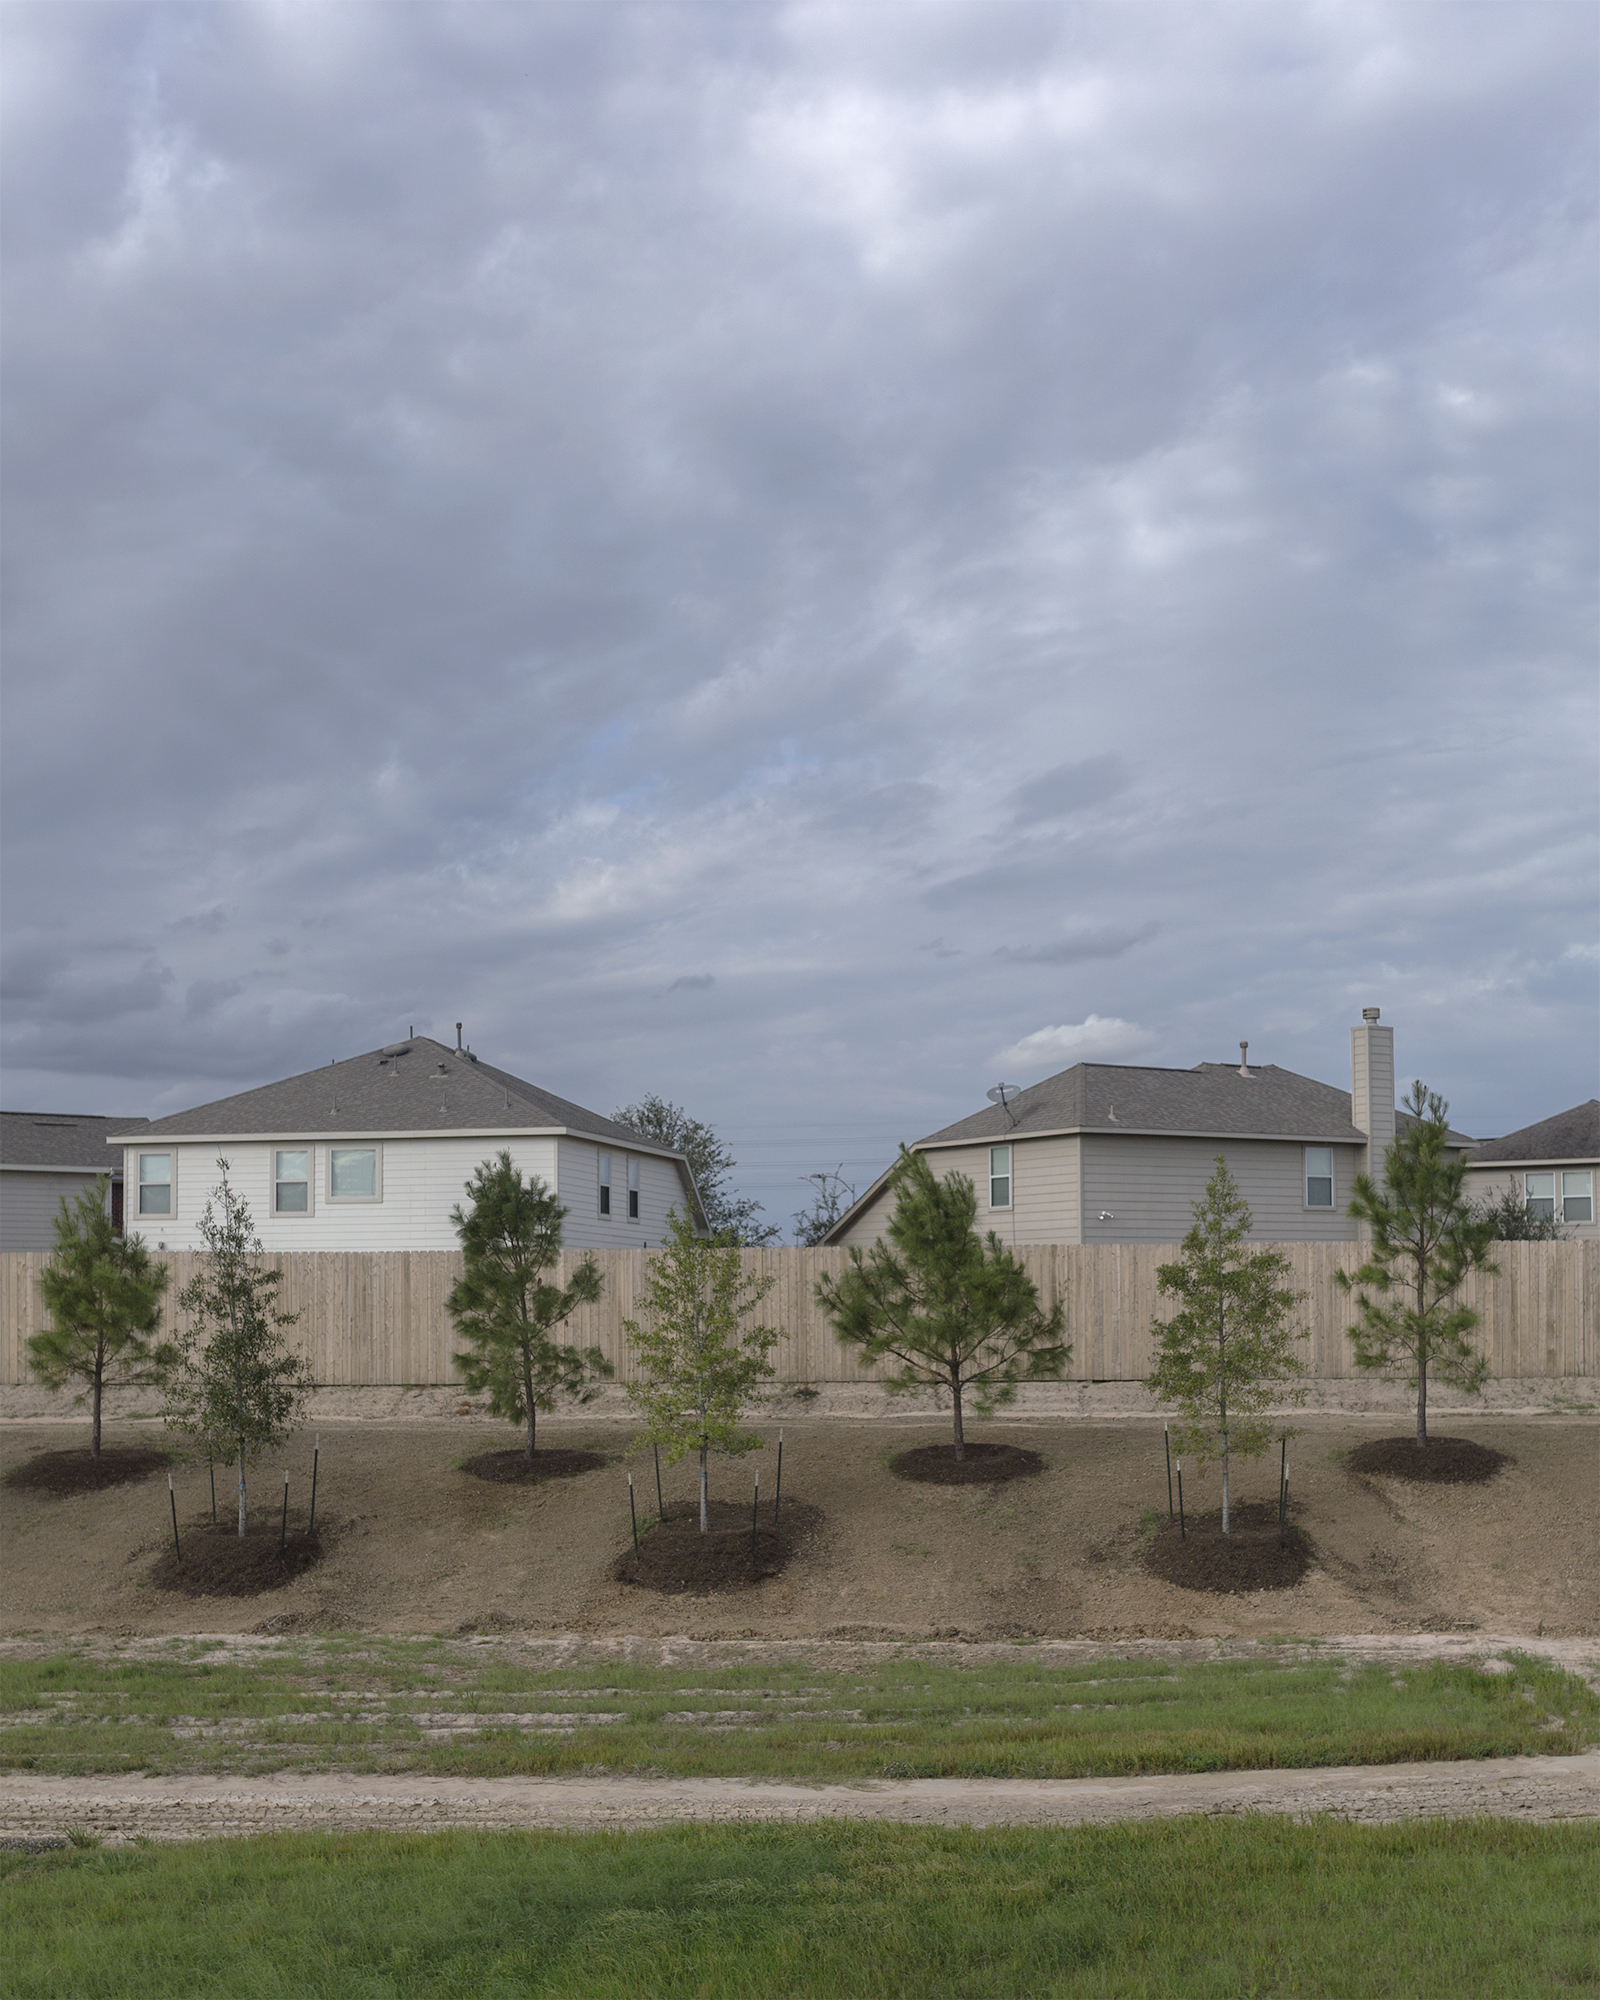 East of downtown Fulshear, with trees that are strategically plotted, the control that nature once had over the Texas prairie is now overwhelmed with a suburban landscape.